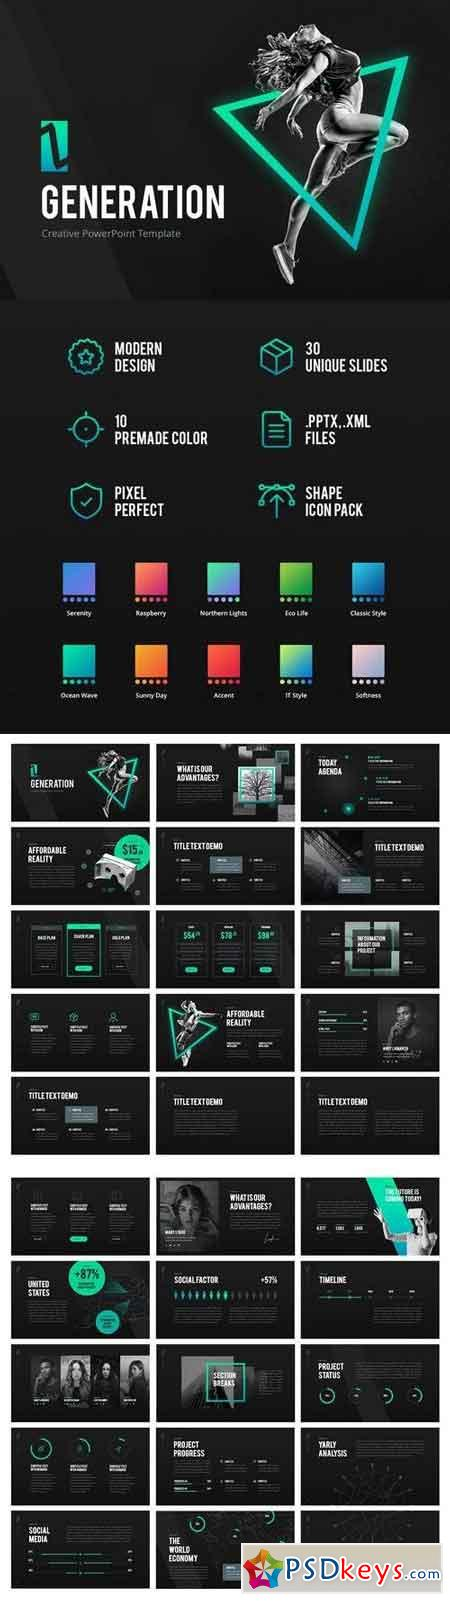 Z Generation Creative Powerpoint Template Free Download